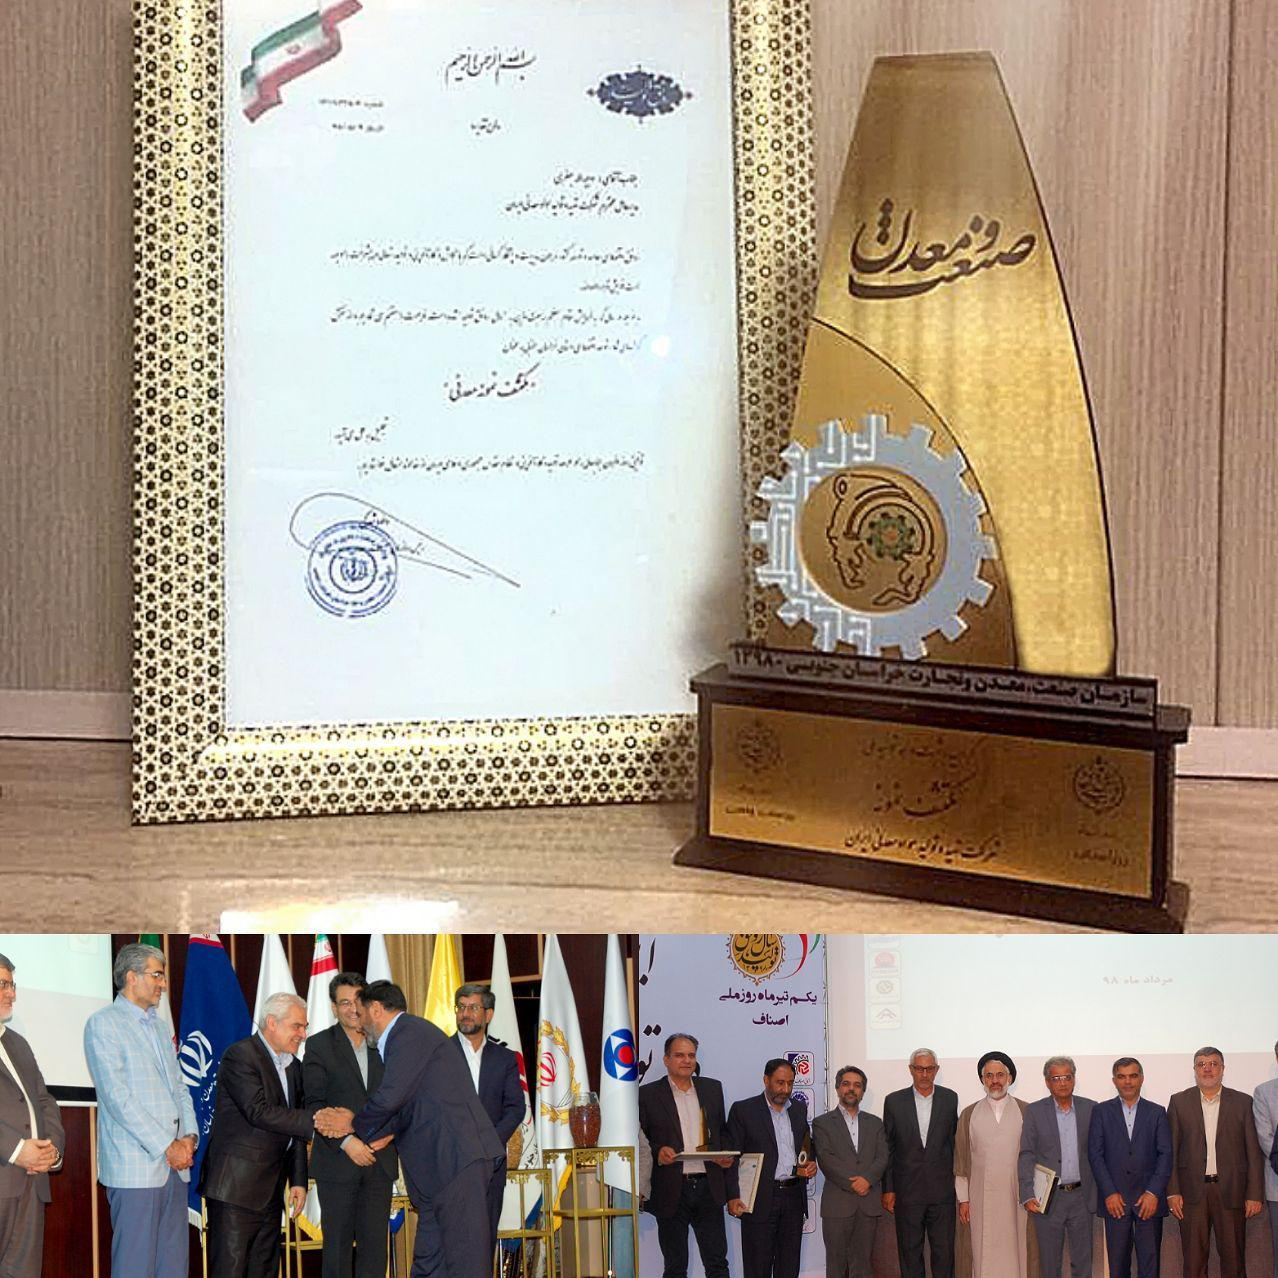 IMPASCO Was Announced as the Best Explorer in South Khorasan